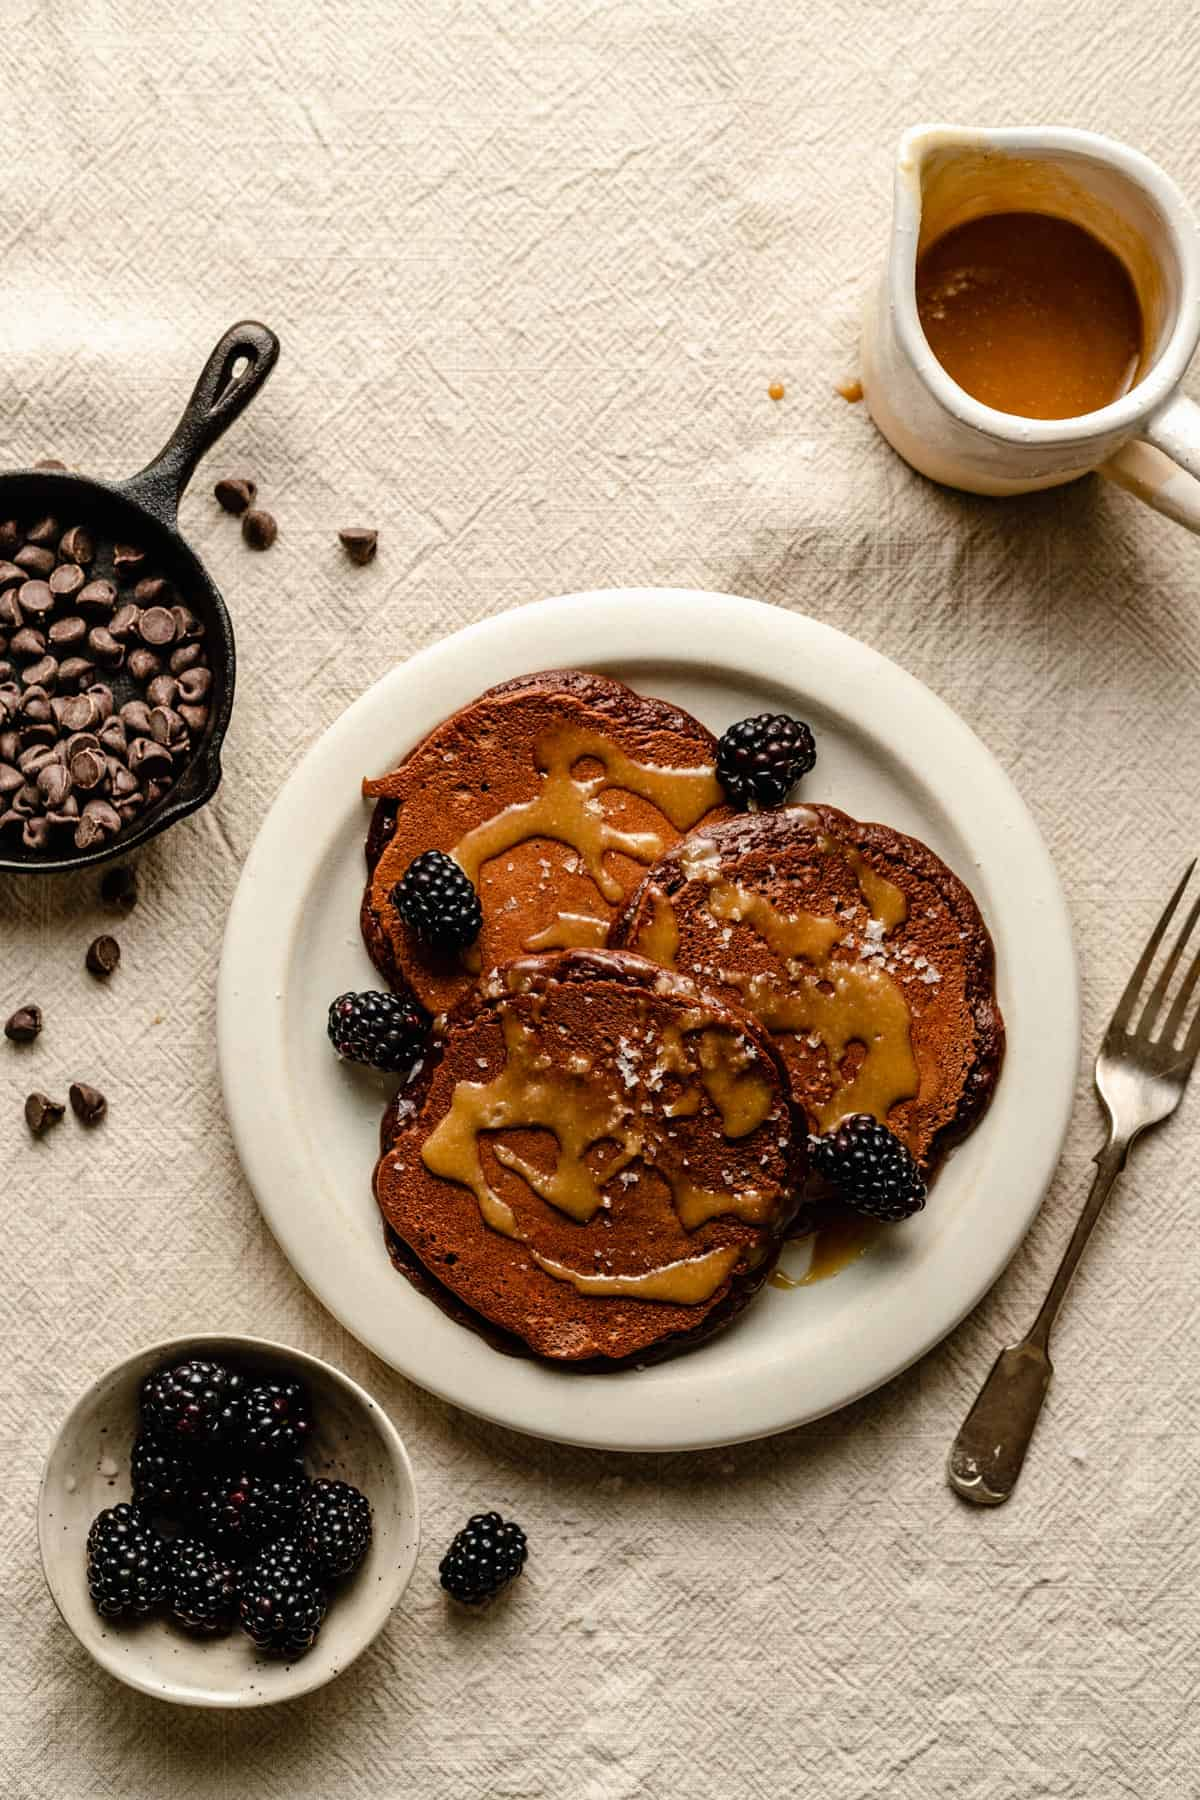 Breakfast setting of pancakes with blackberries and syrup topping and chocolate chips.